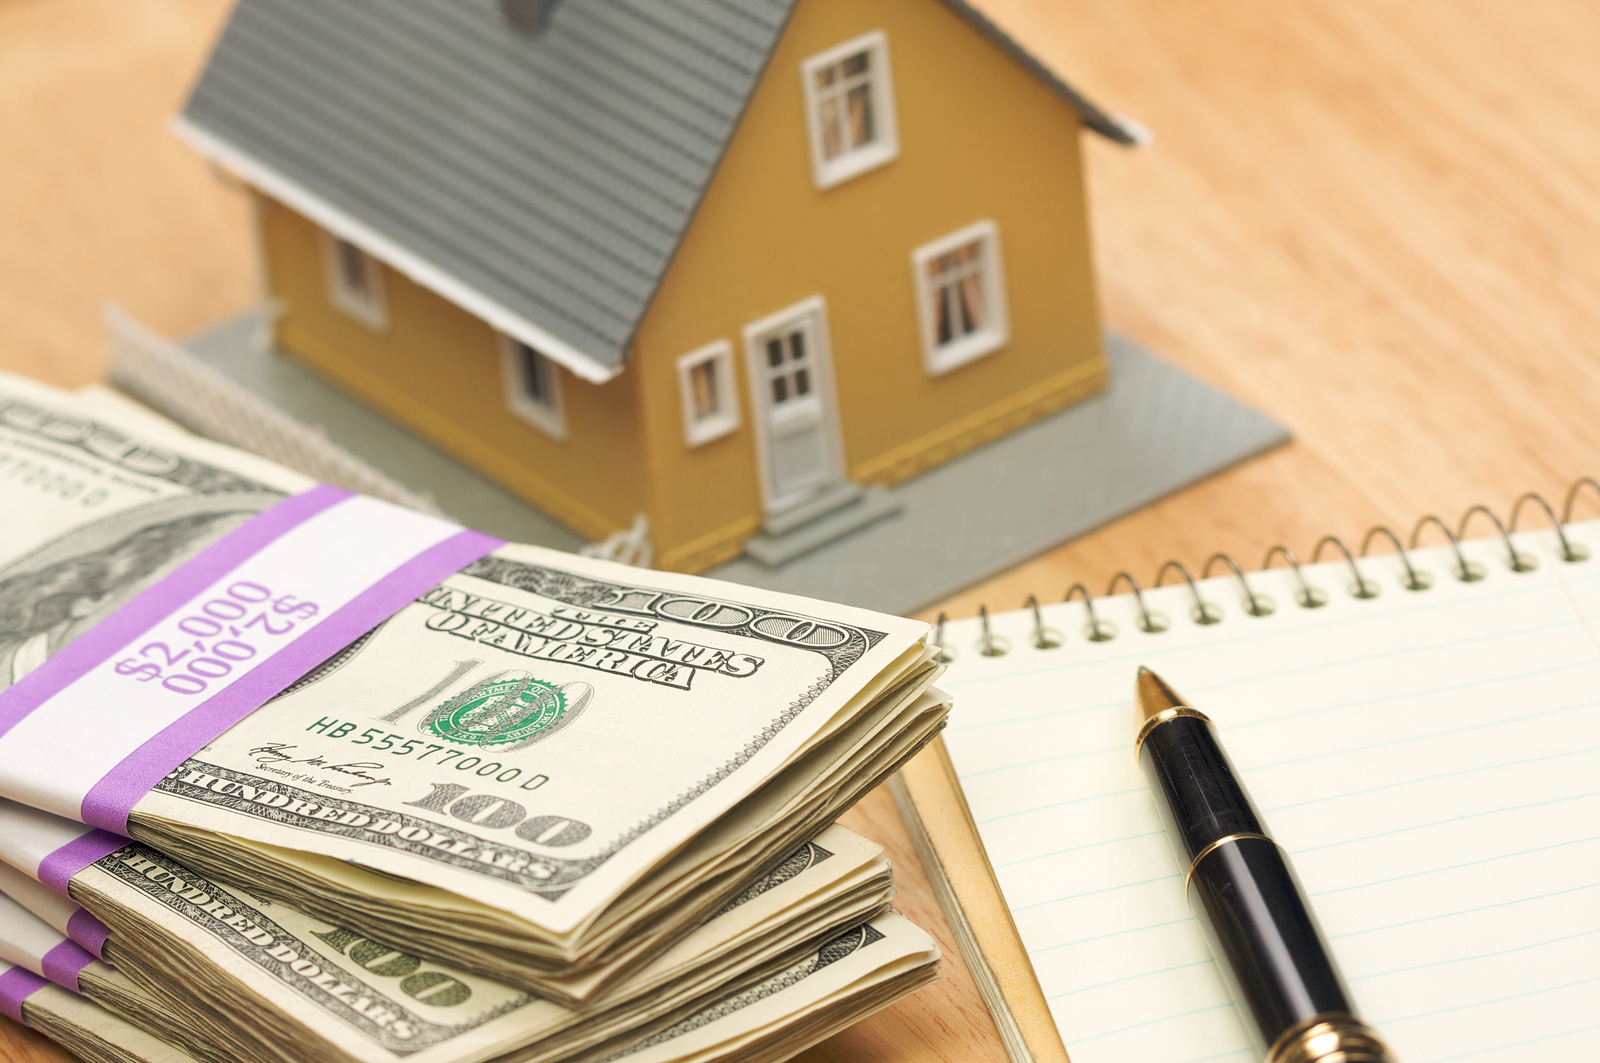 Cash Pooling Ventajas Y Desventajas Everything You Need To Know About The Down Payment Re